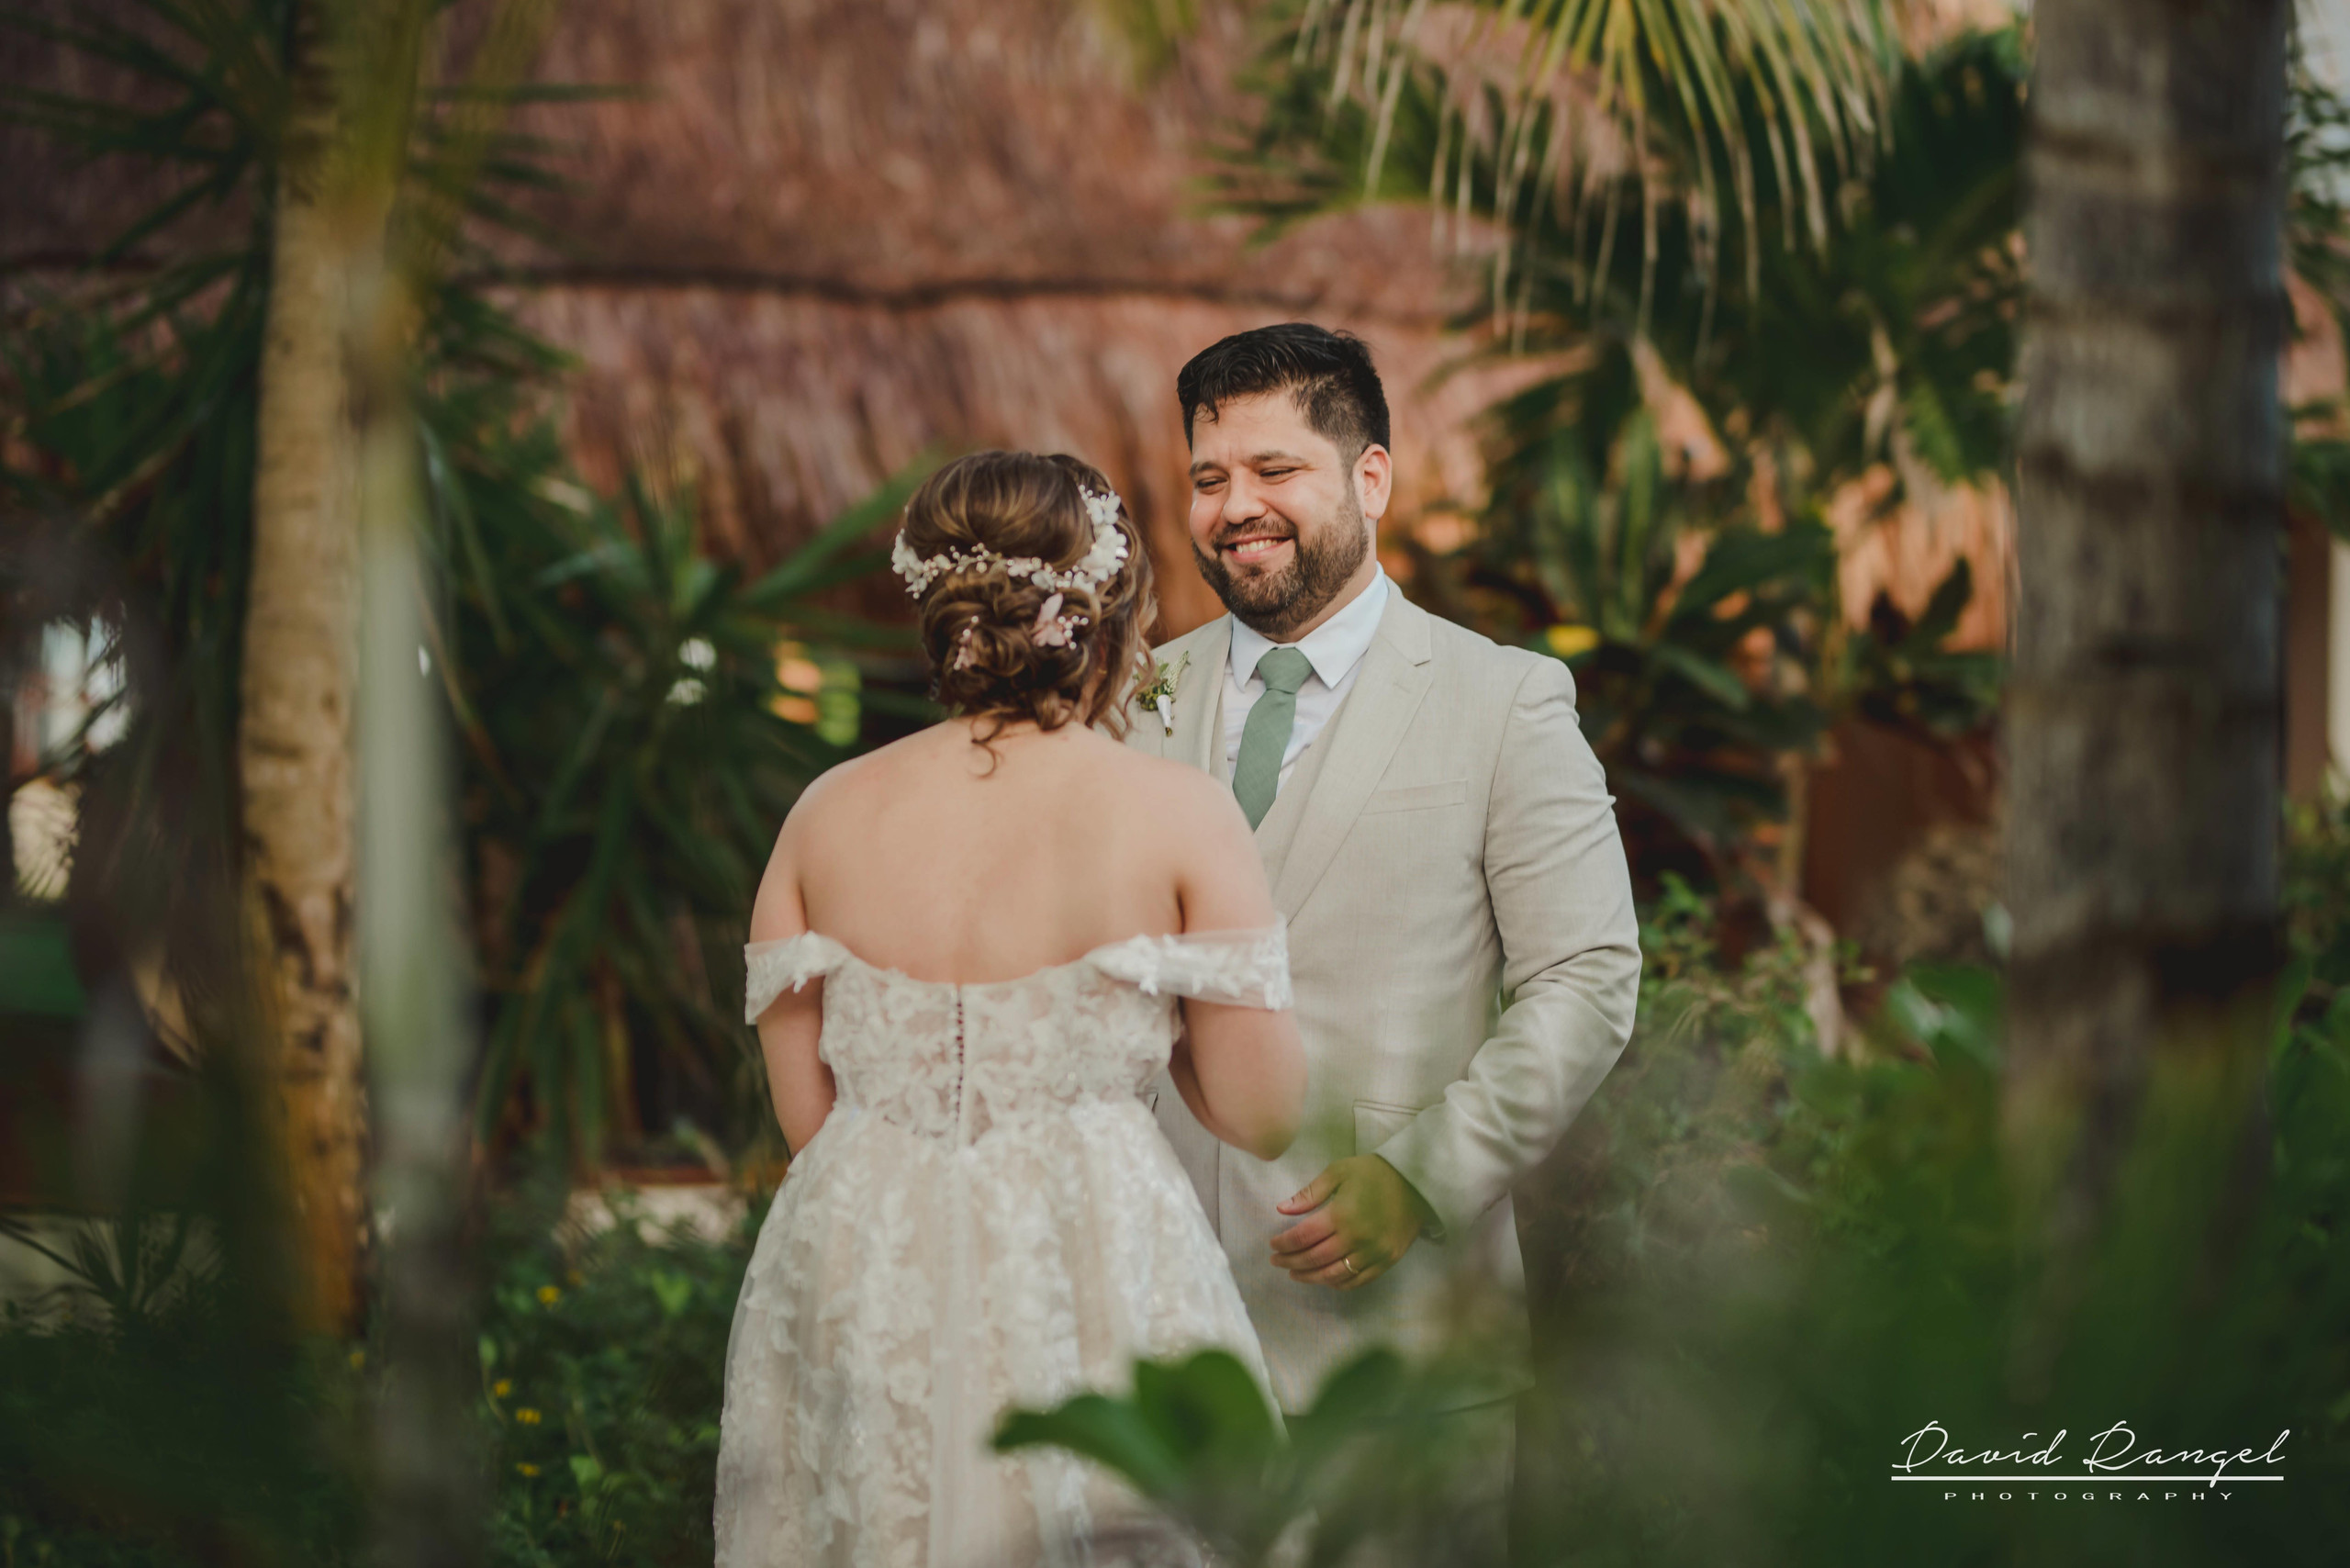 bride+candy+shot+beach+isla+blanca+villa+chenera+photo+costa+mujeres+first+look+groom+surprise+garden+wedding+dress+suit+tie